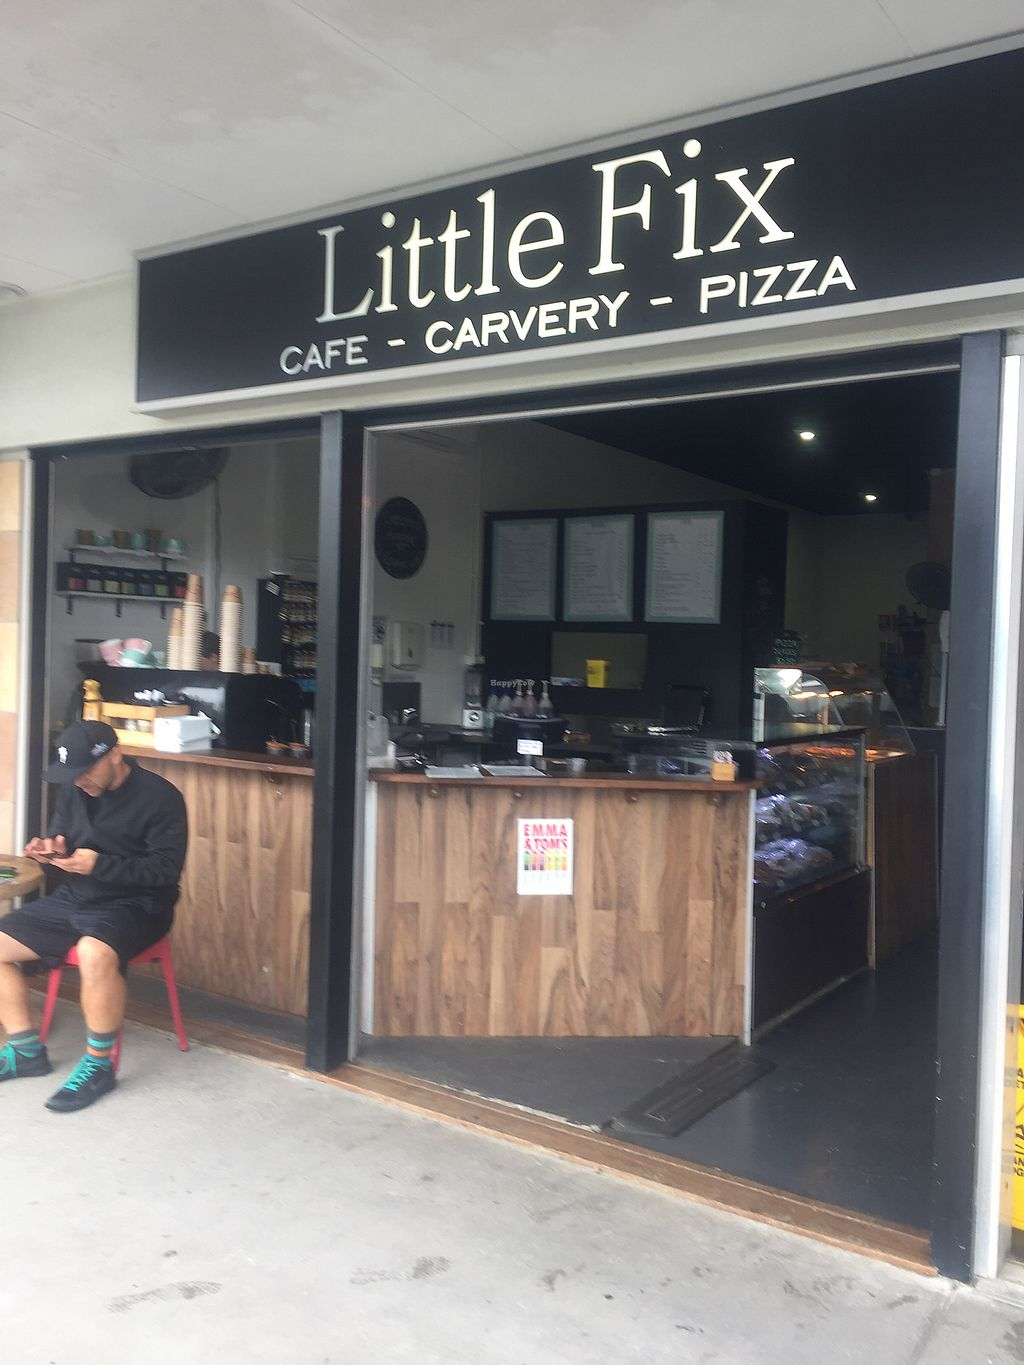 """Photo of Little Fix Cafe and Carvery  by <a href=""""/members/profile/Sundeez"""">Sundeez</a> <br/>Little Fix front <br/> February 3, 2018  - <a href='/contact/abuse/image/111100/354312'>Report</a>"""